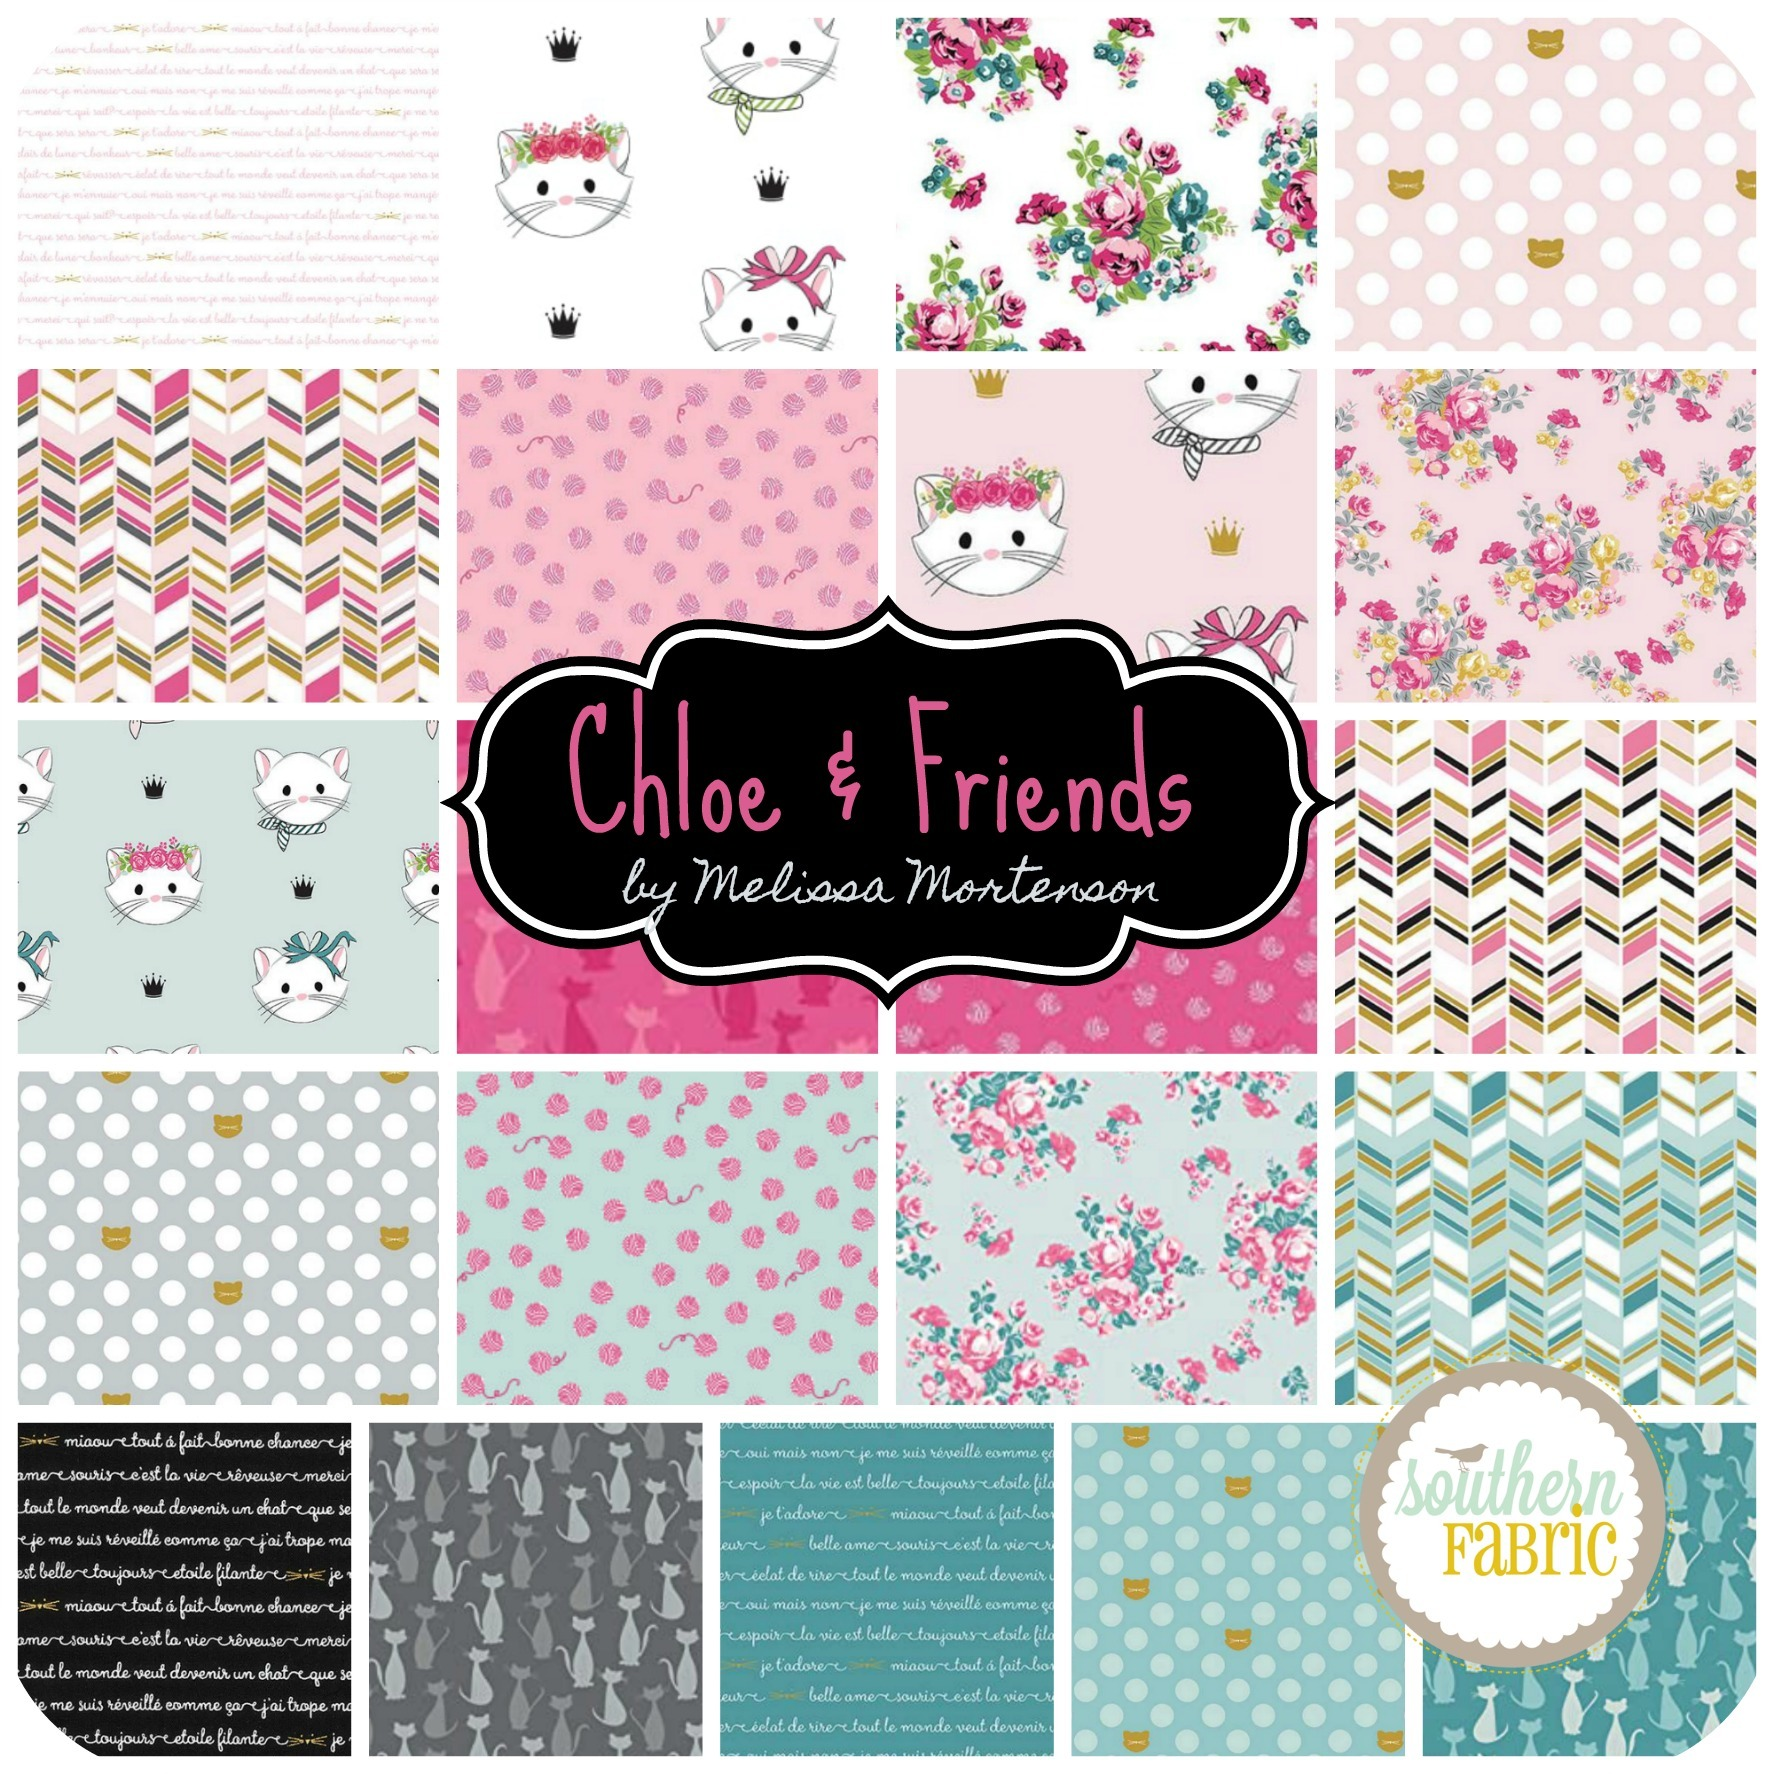 Chloe & Friends by Melissa Mortenson